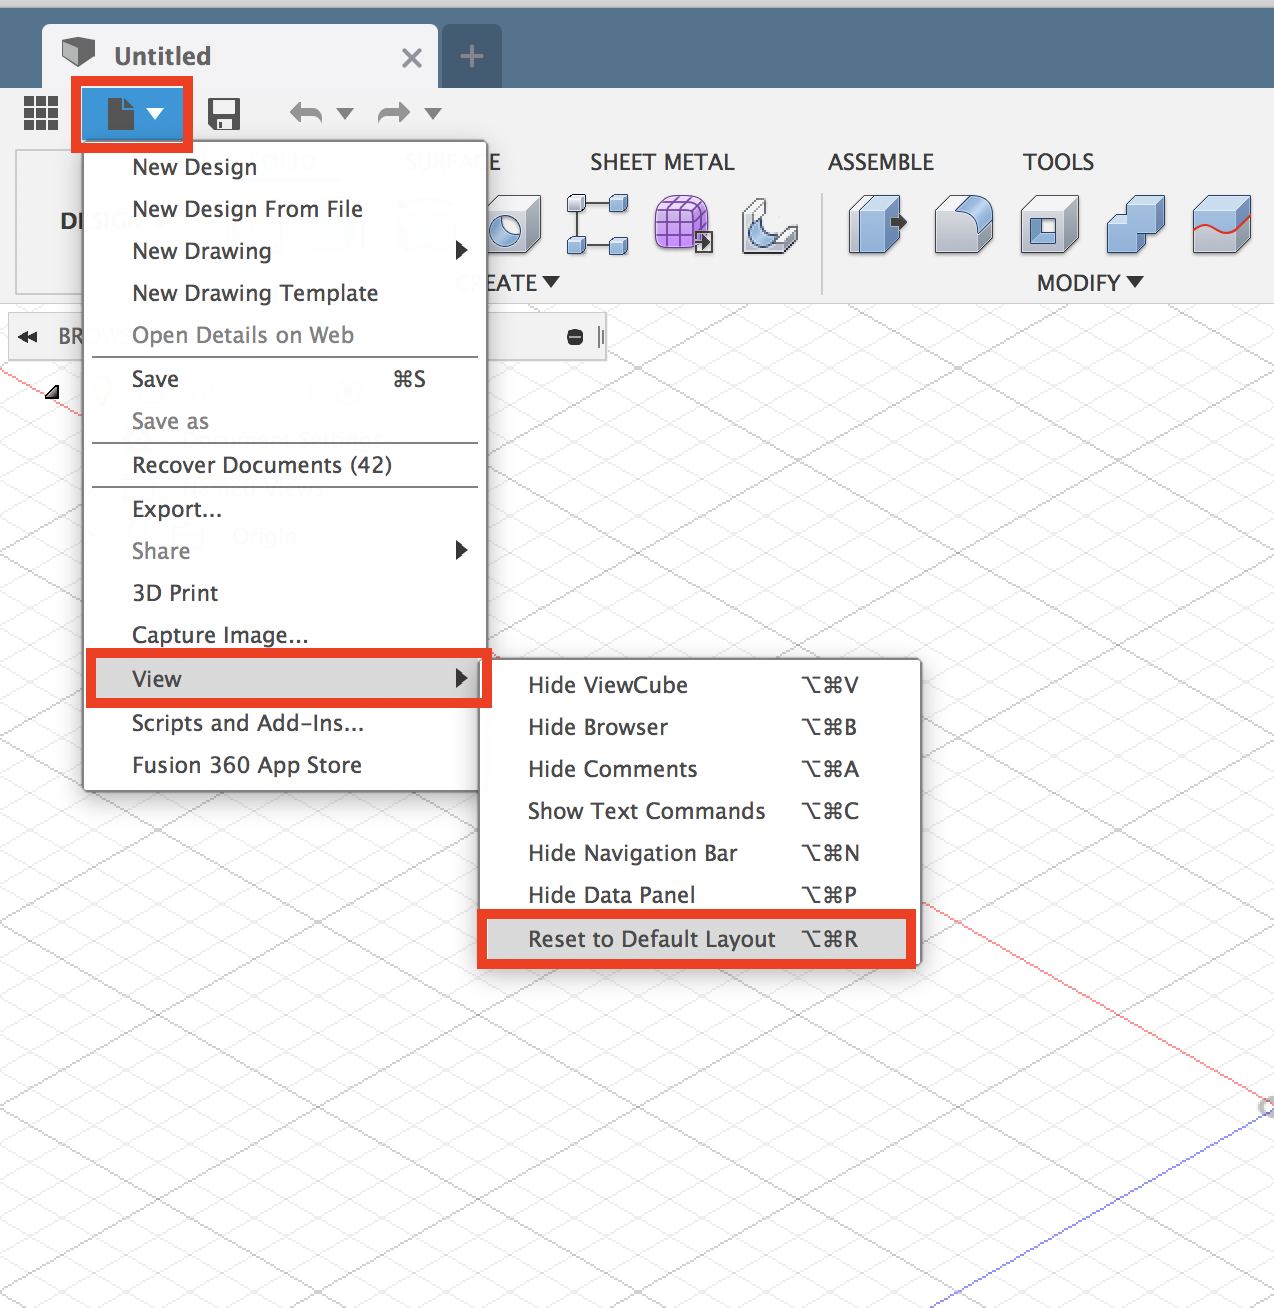 How to reset to the default layout in Fusion 360   Fusion